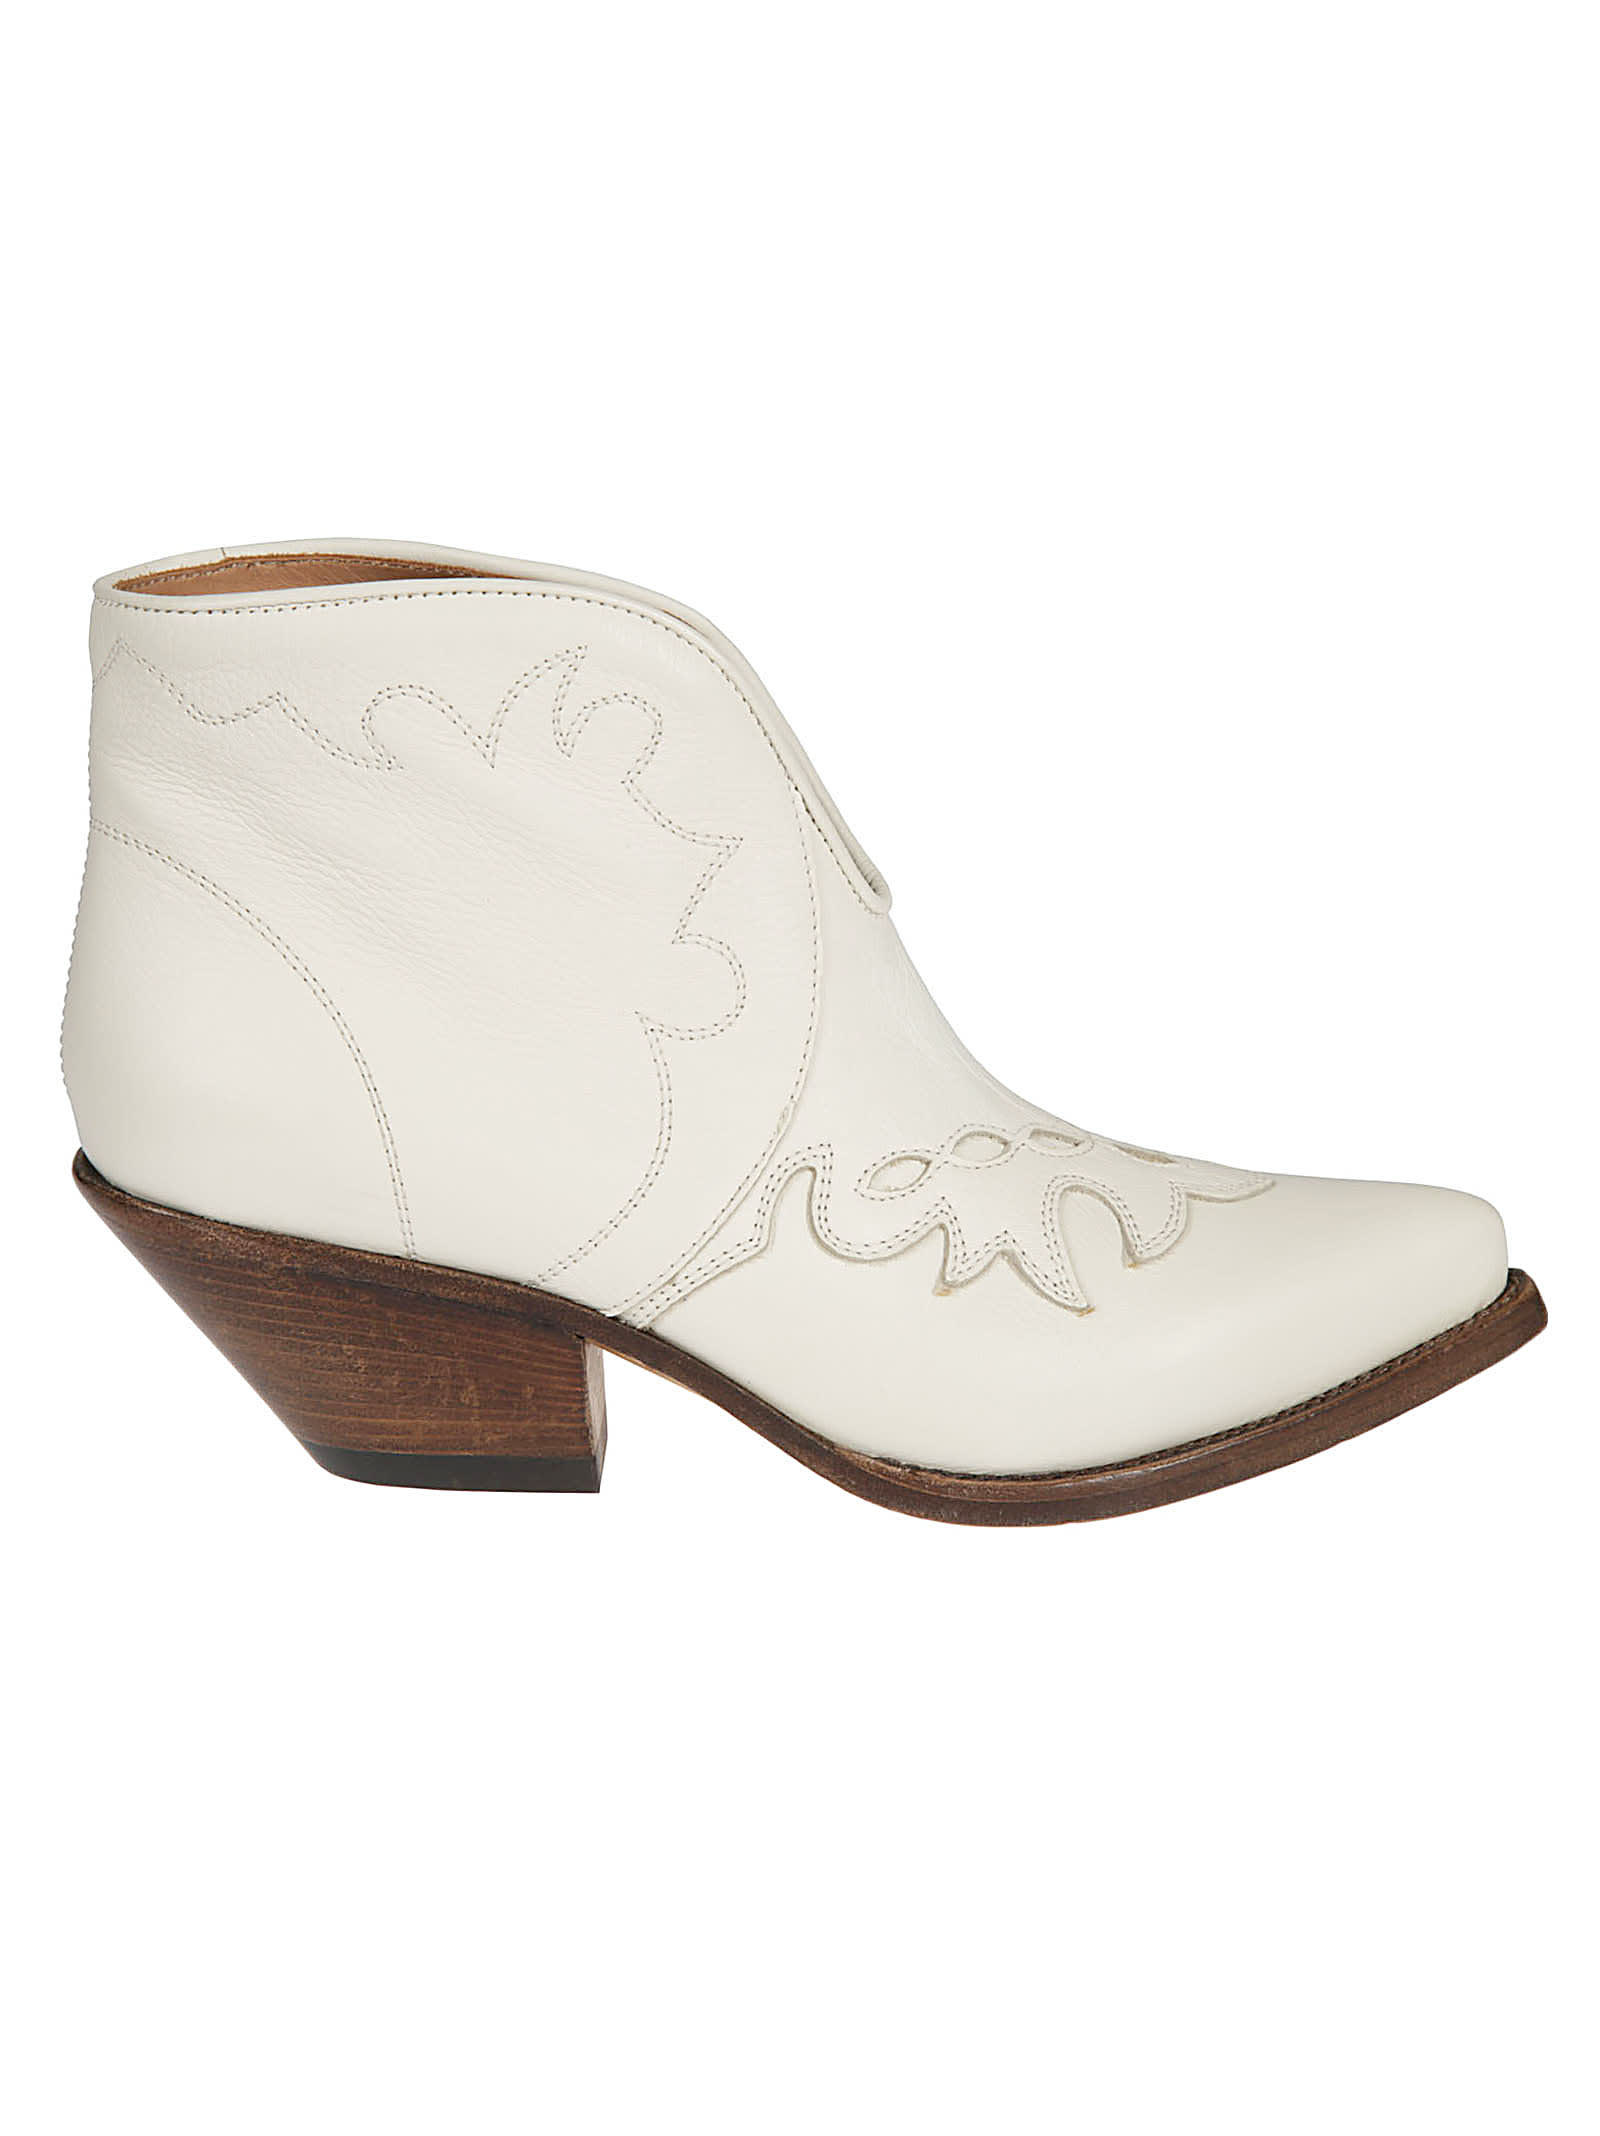 Photo of Buttero Stitched Ankle Boots - shop Buttero clothing 40% sales